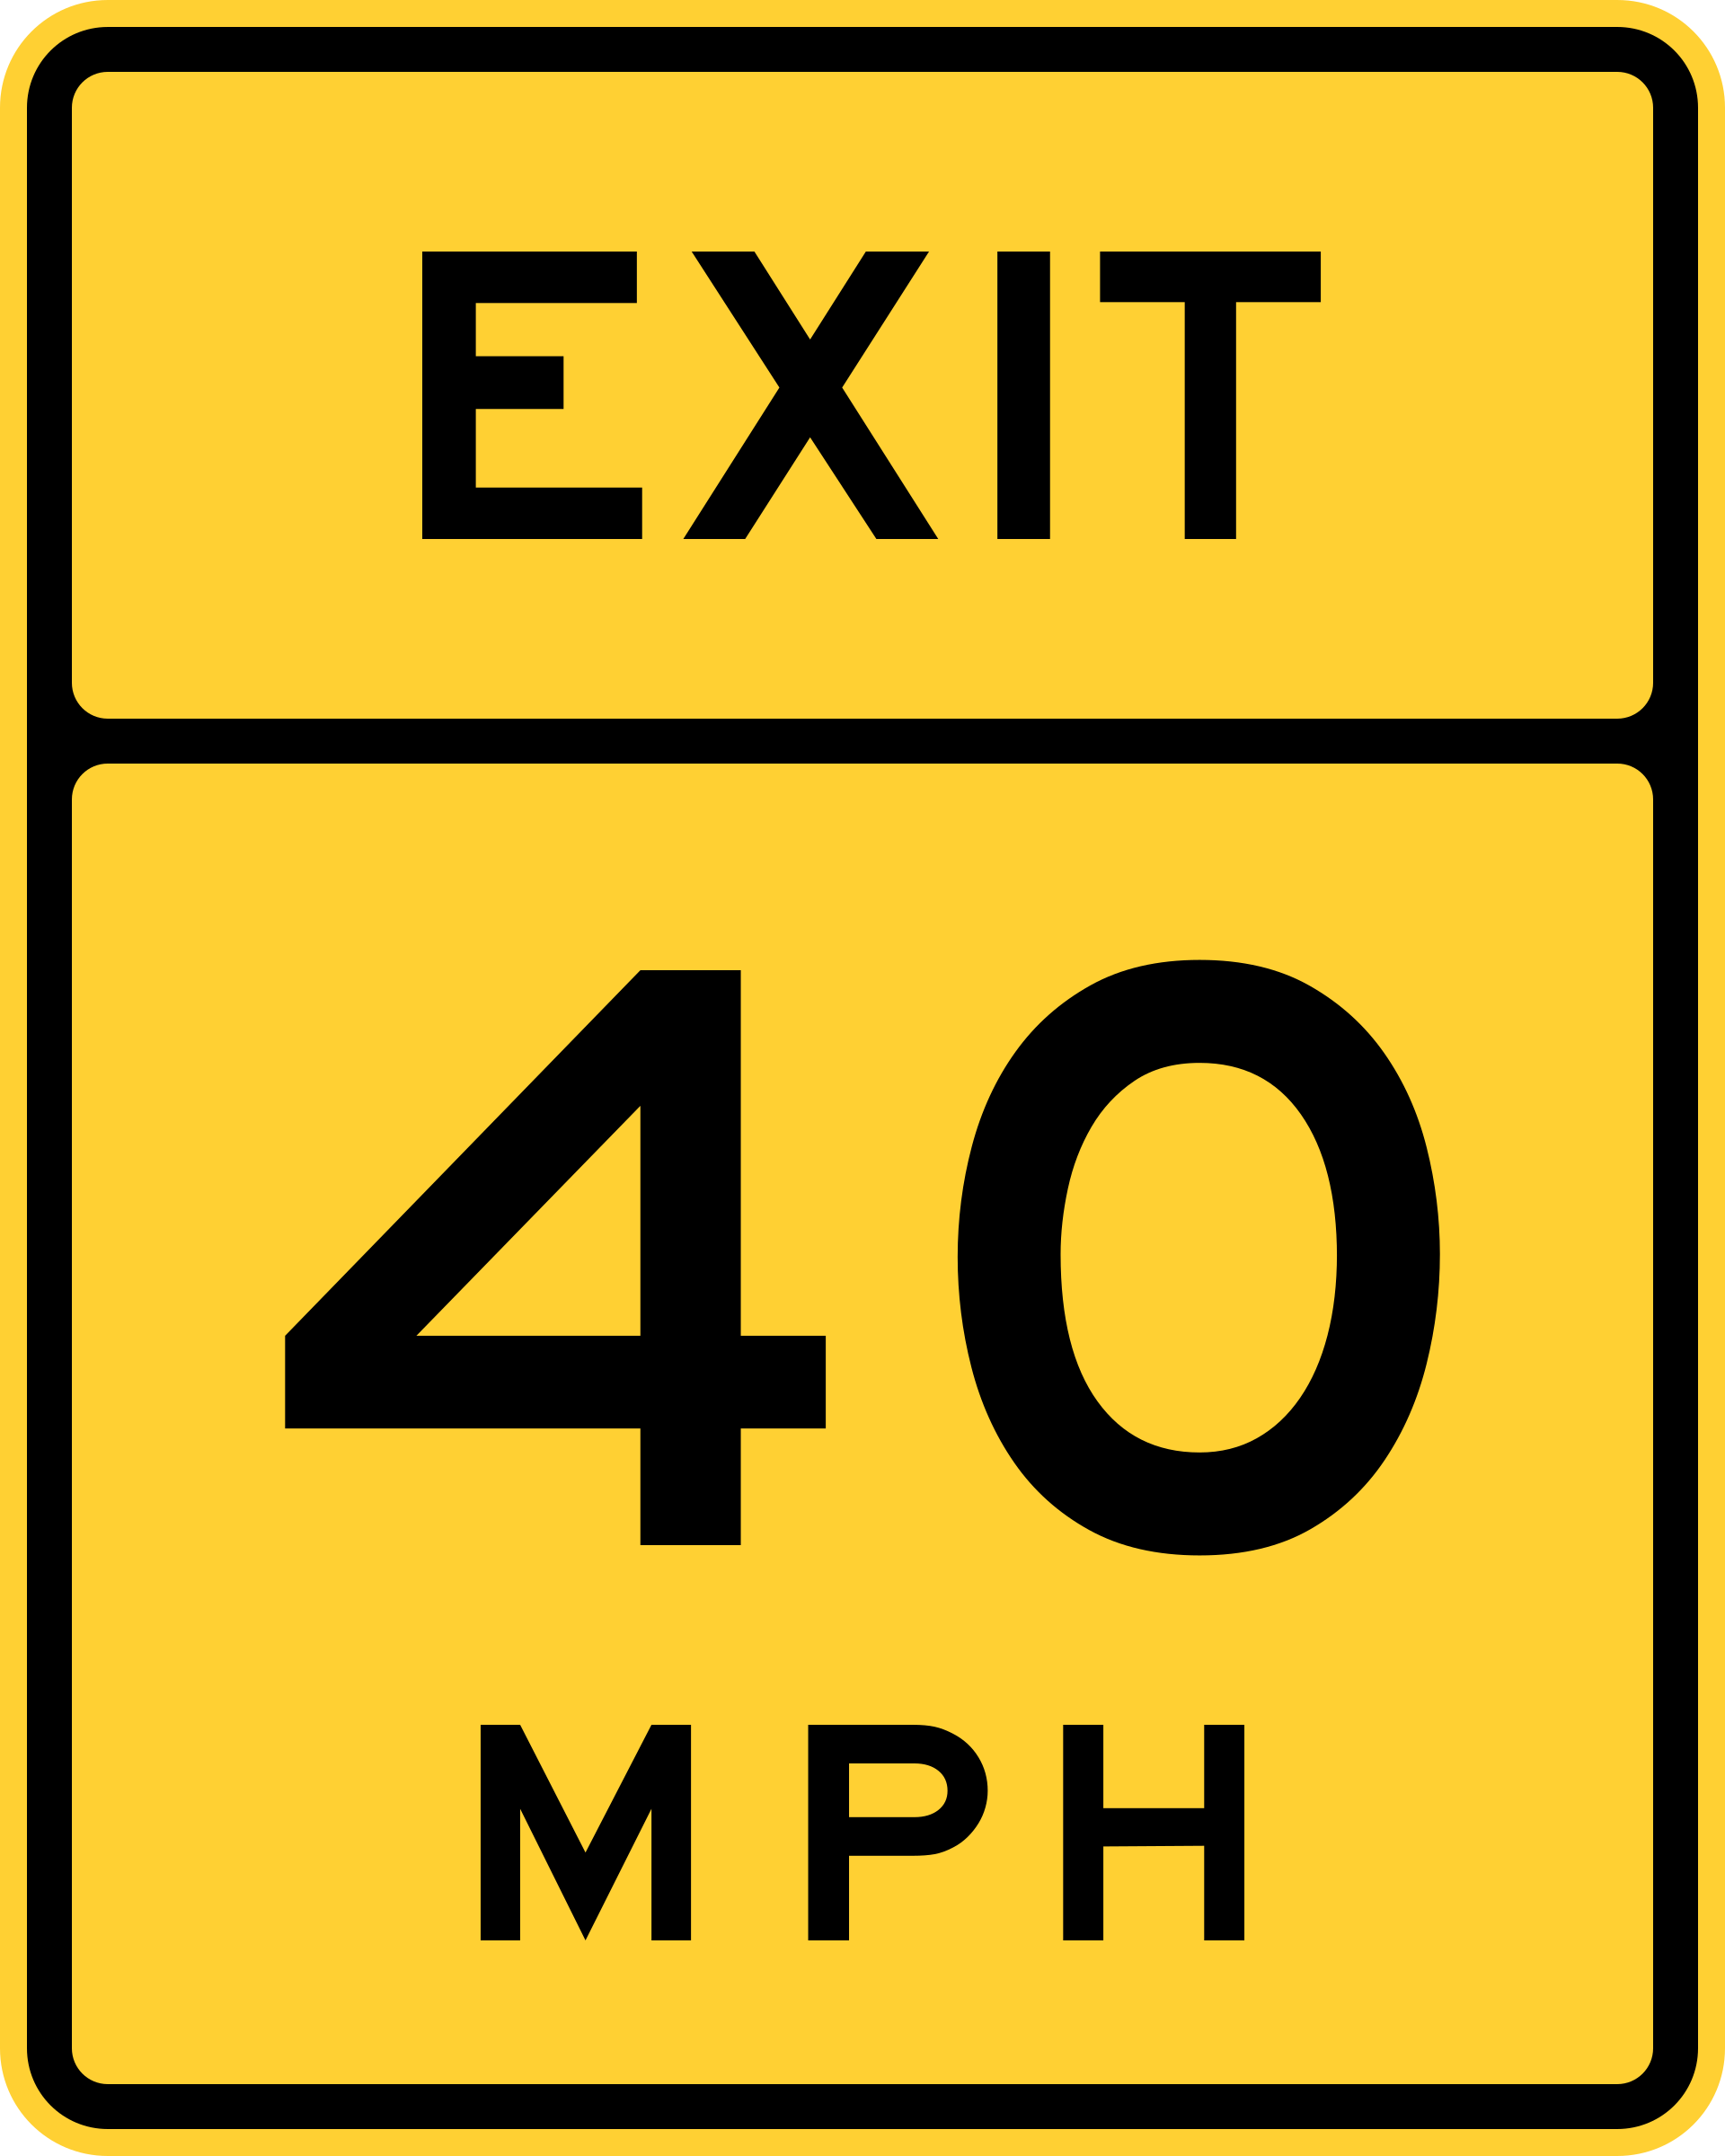 Exit Speed 40 by Rfc1394